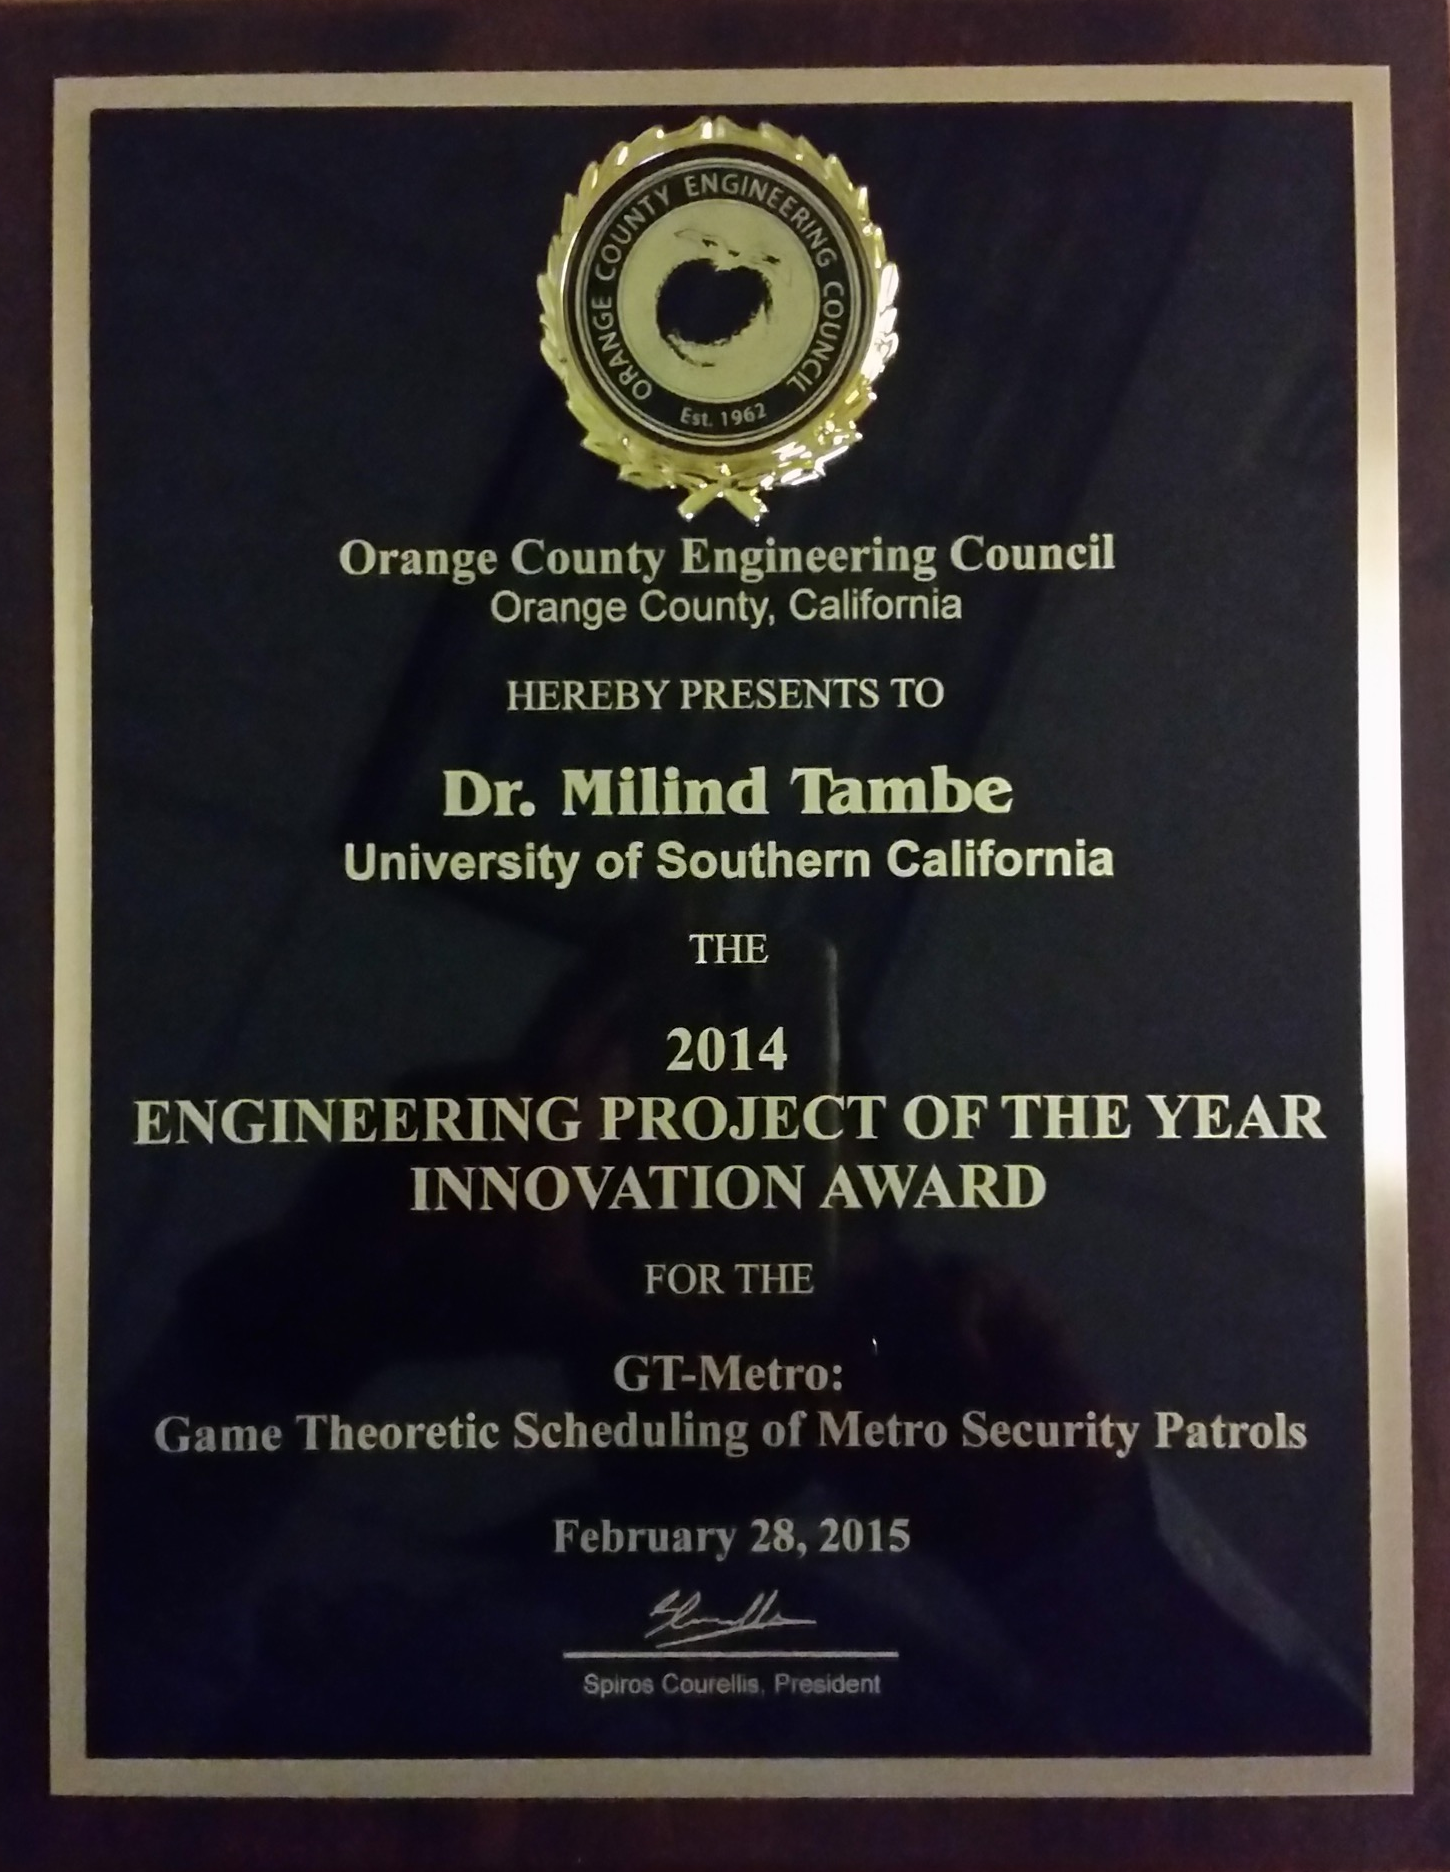 2015 Engineering Project of the Year Innovation Award